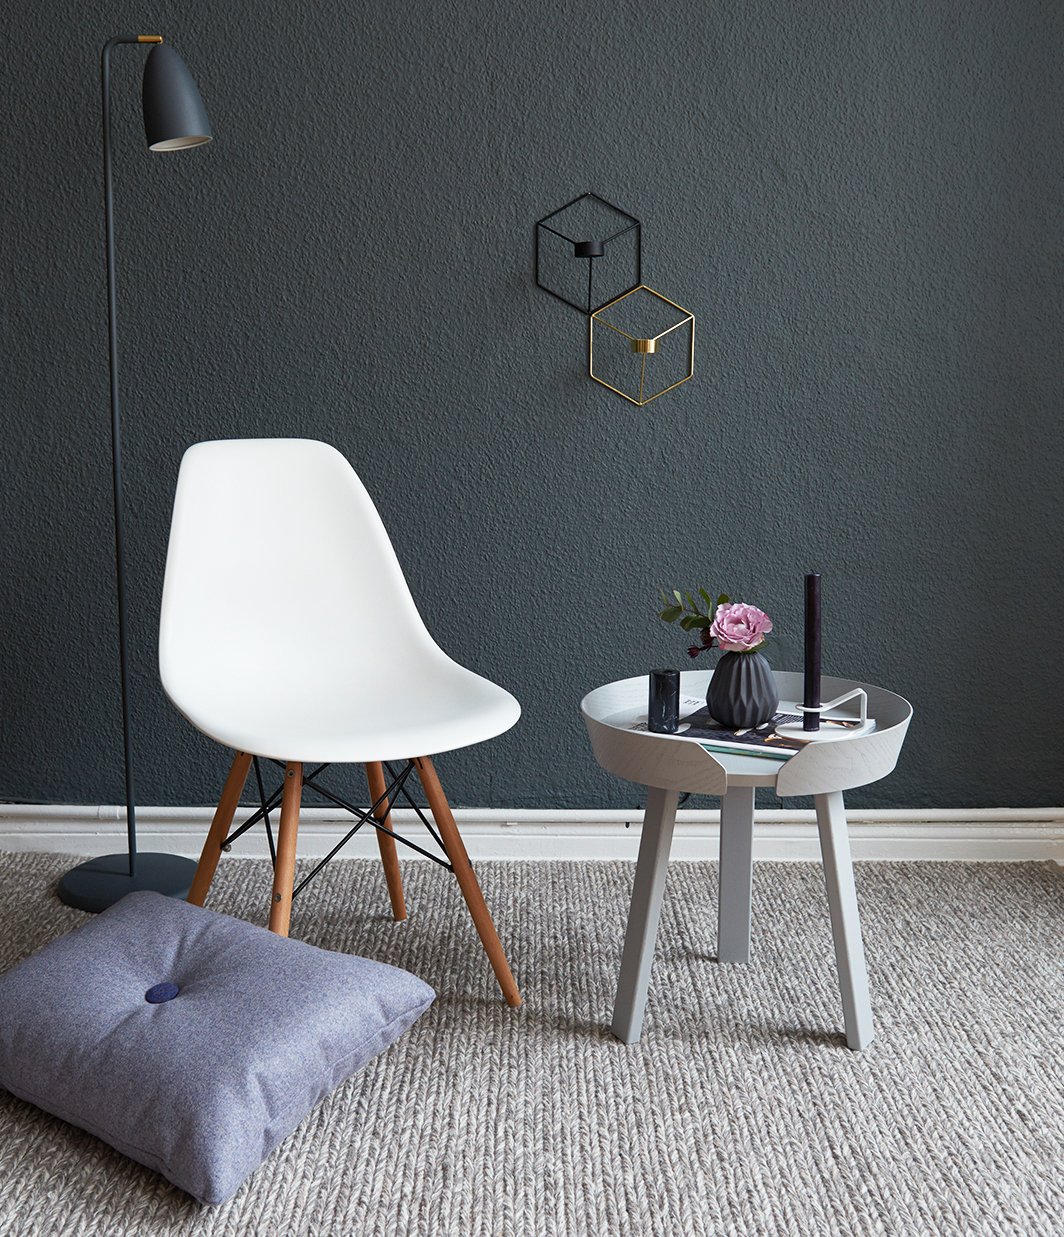 muuto-around-coffee-table-styling-berlin-blogger-3